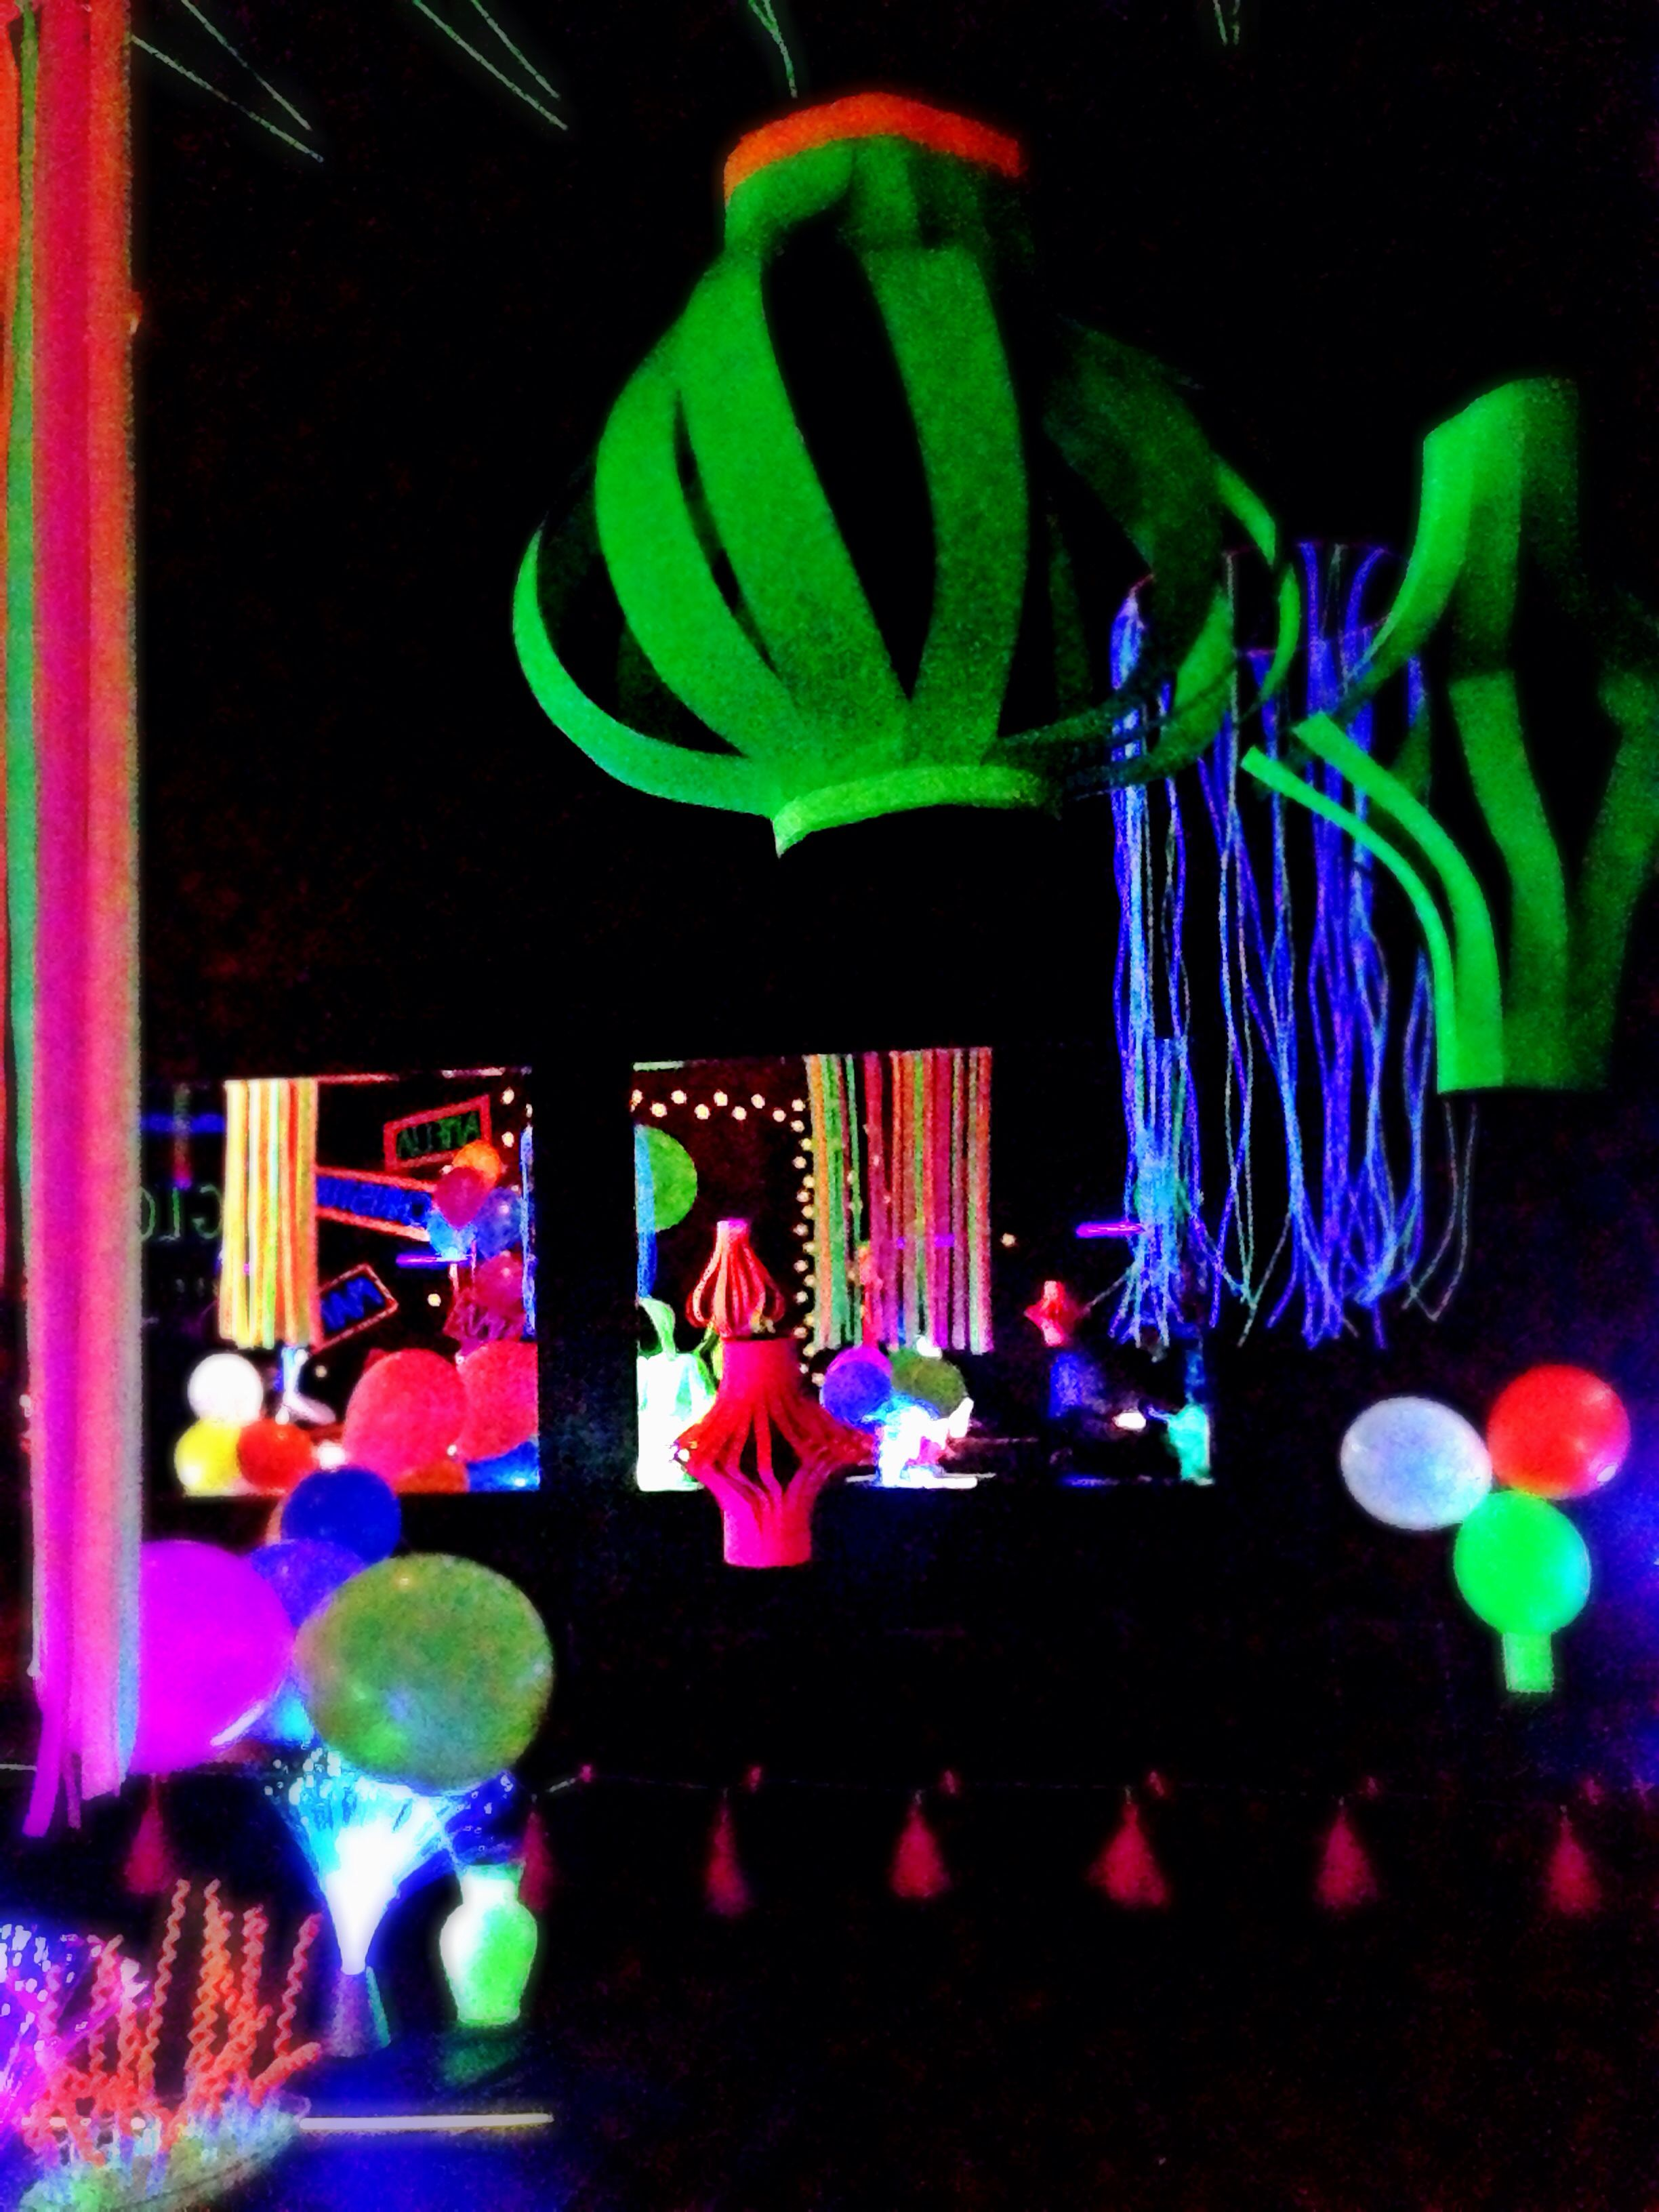 Uncategorized Neon Decorations paper lanterns from neon poster board glow party decorations decor with amazing looks like a pitch dark room make the come alive beautiful colors exci